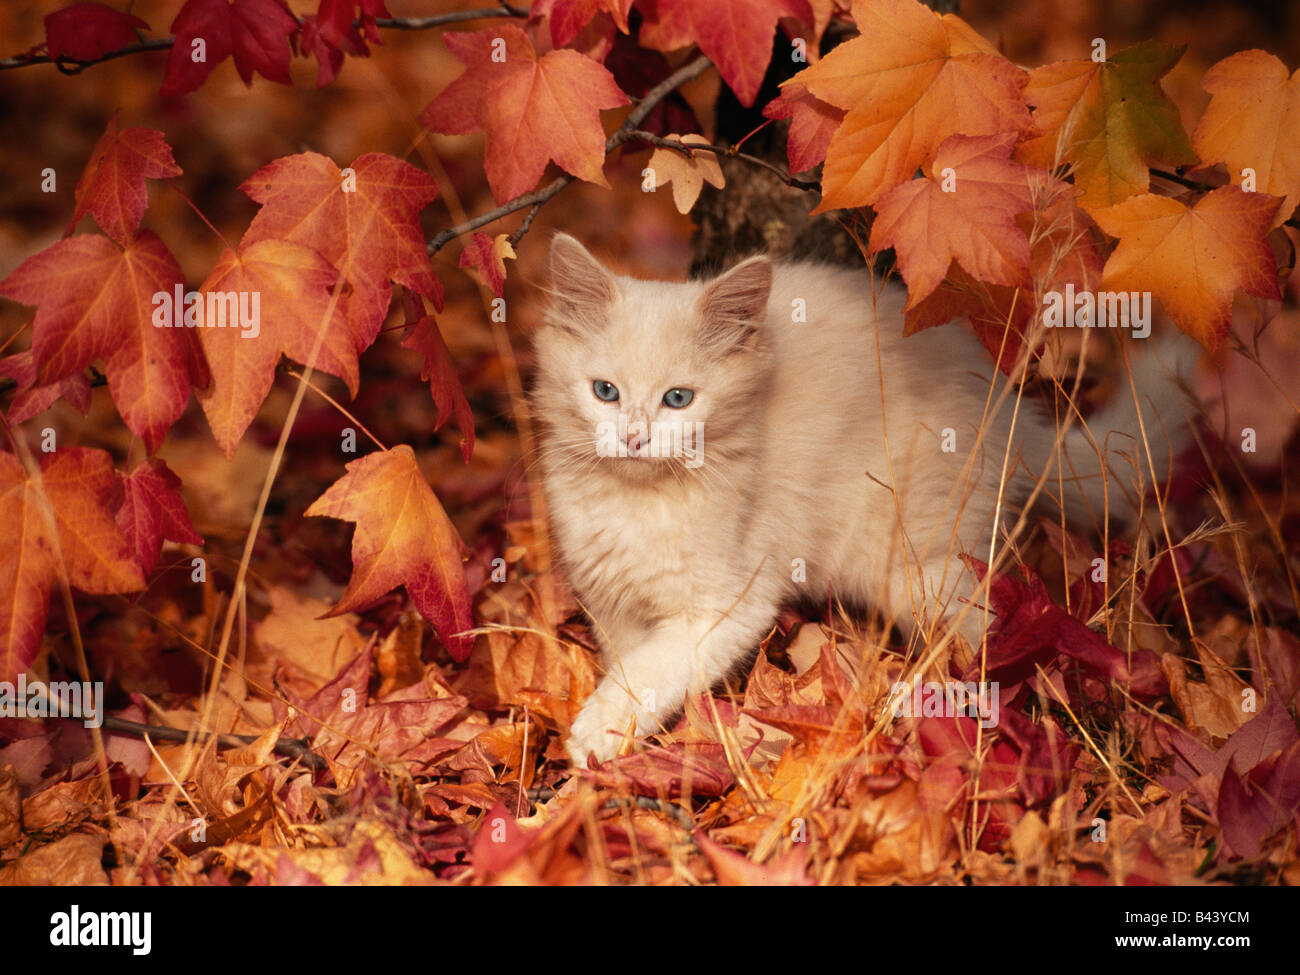 Juvenile kitten exploring in fall foliage. - Stock Image